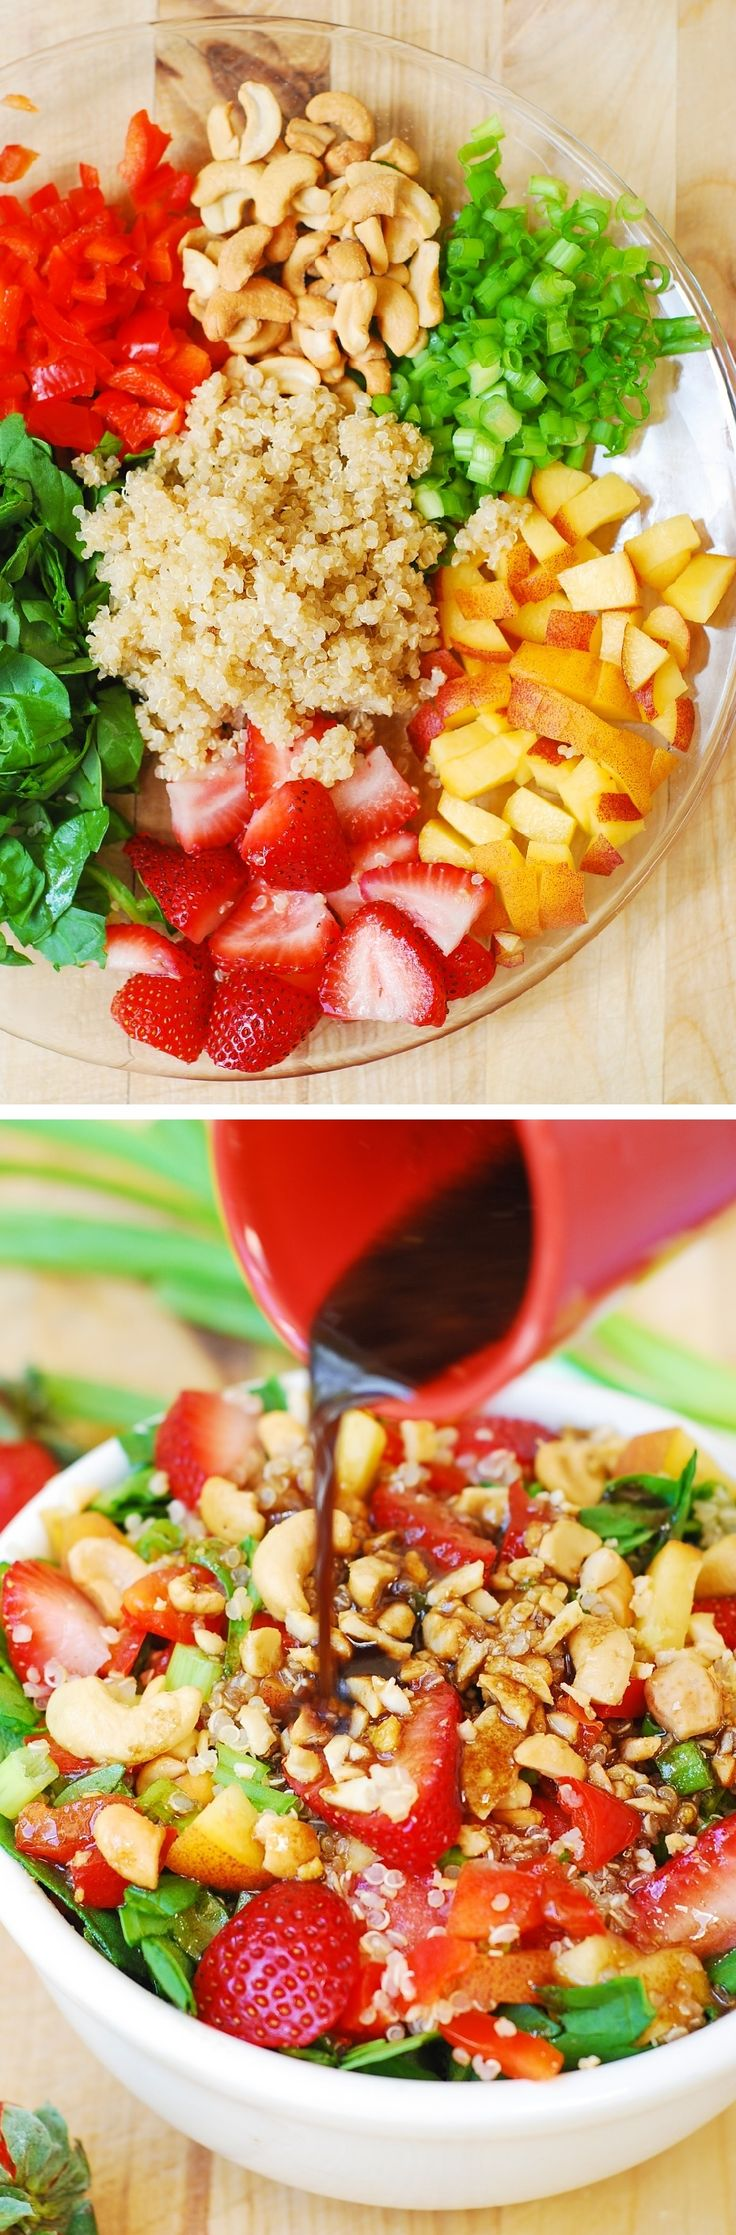 Strawberry, quinoa, spinach and cashew salad in a homemade honey-mustard balsamic vinegar dressing. Its a delicious Summer salad, made with healthy, clean, whole foods